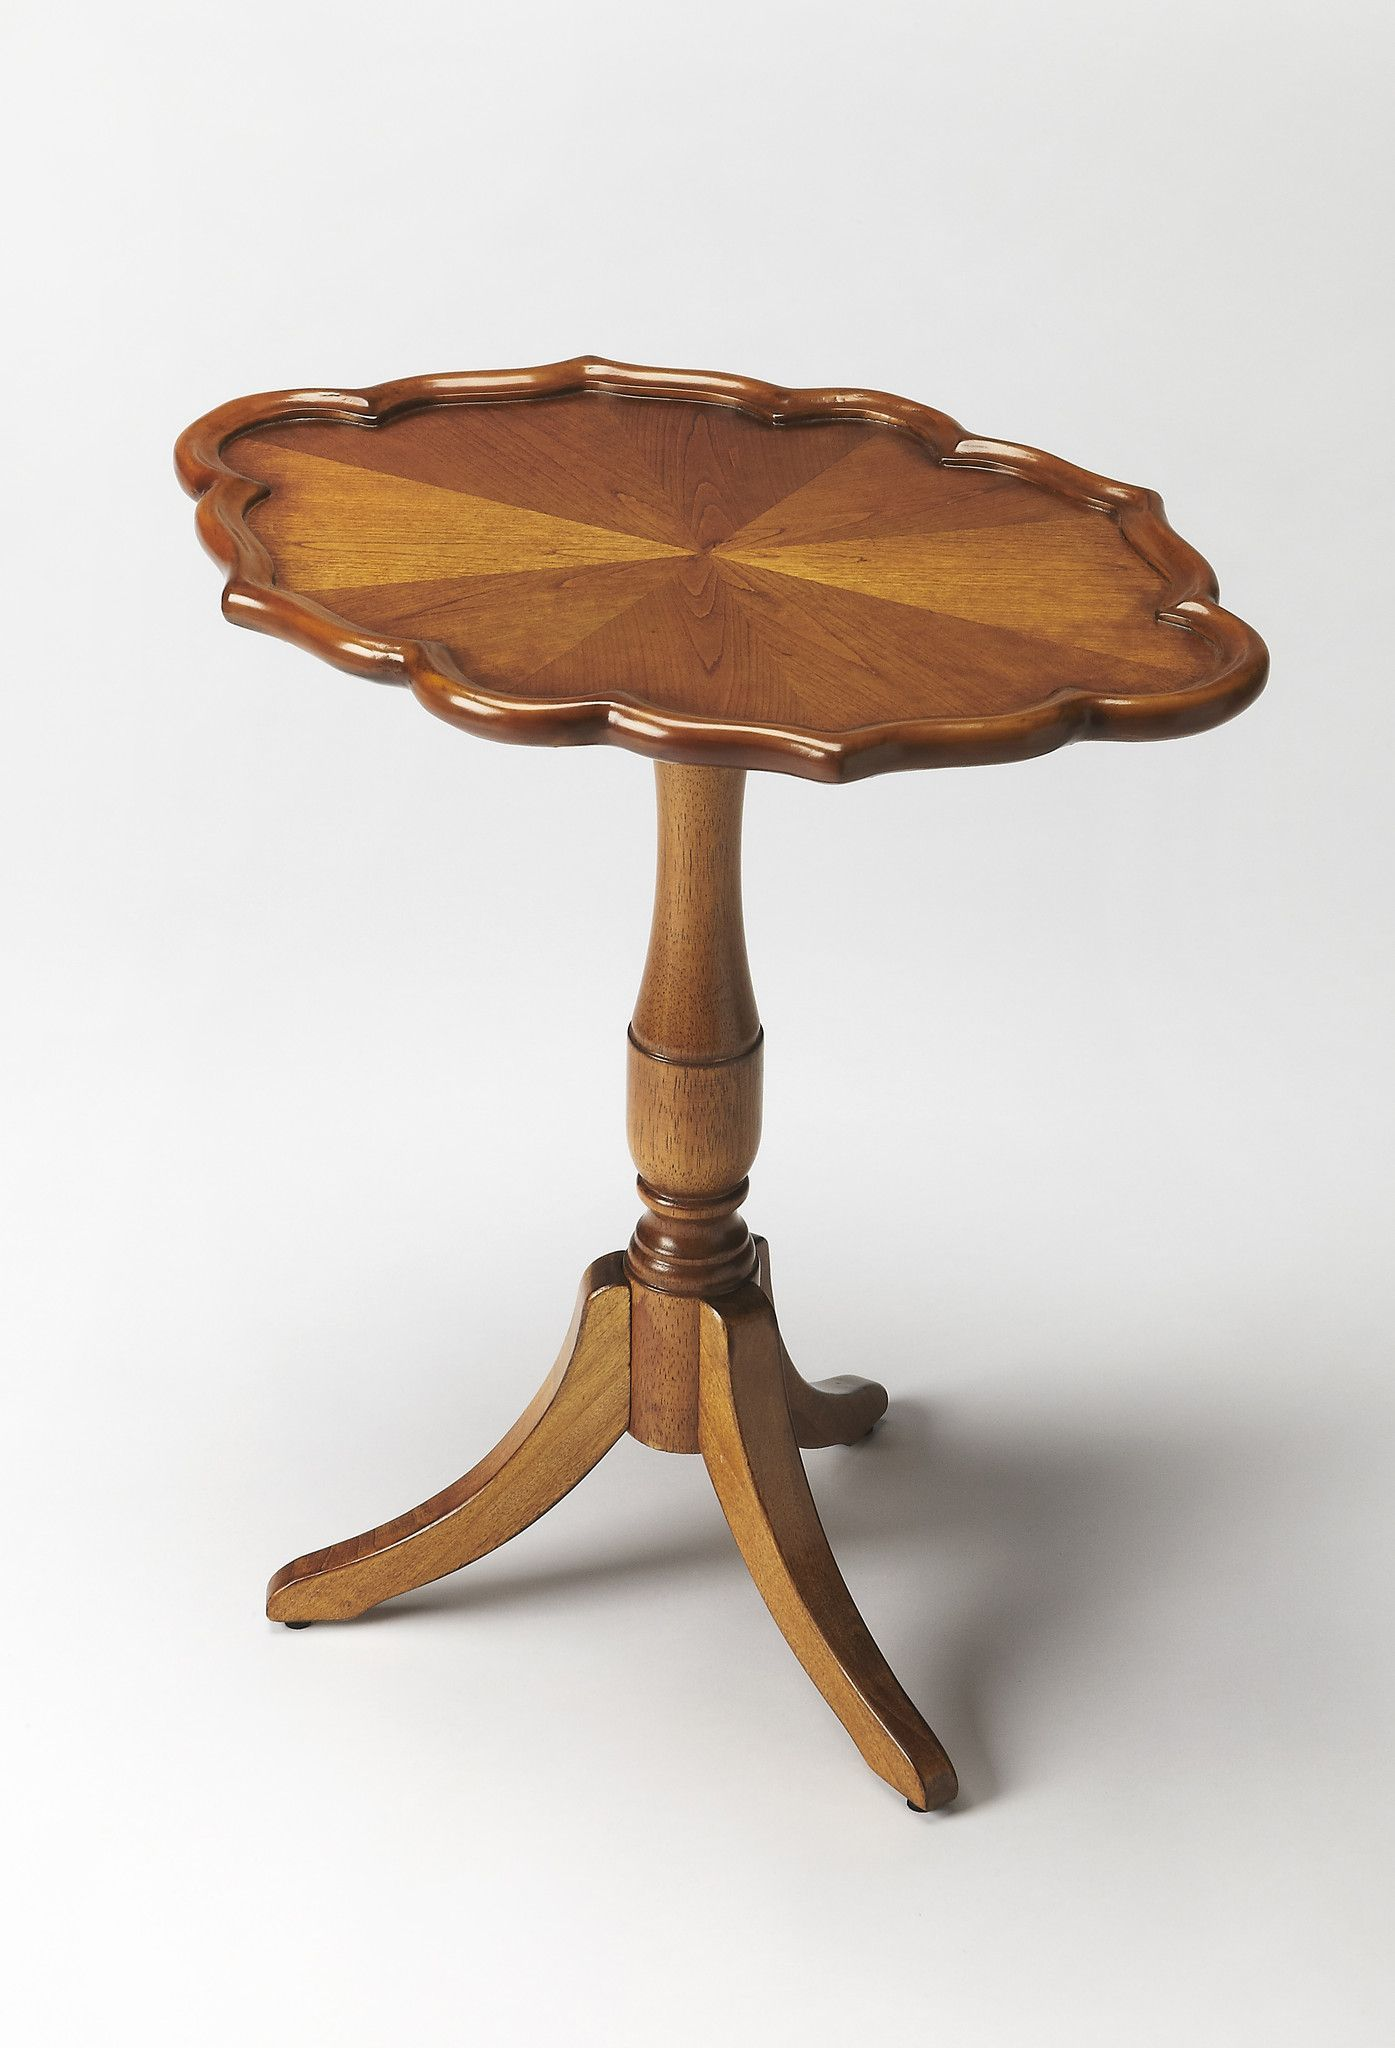 Masterpiece Higgins Olive Ash Burl Oval Pedestal Table